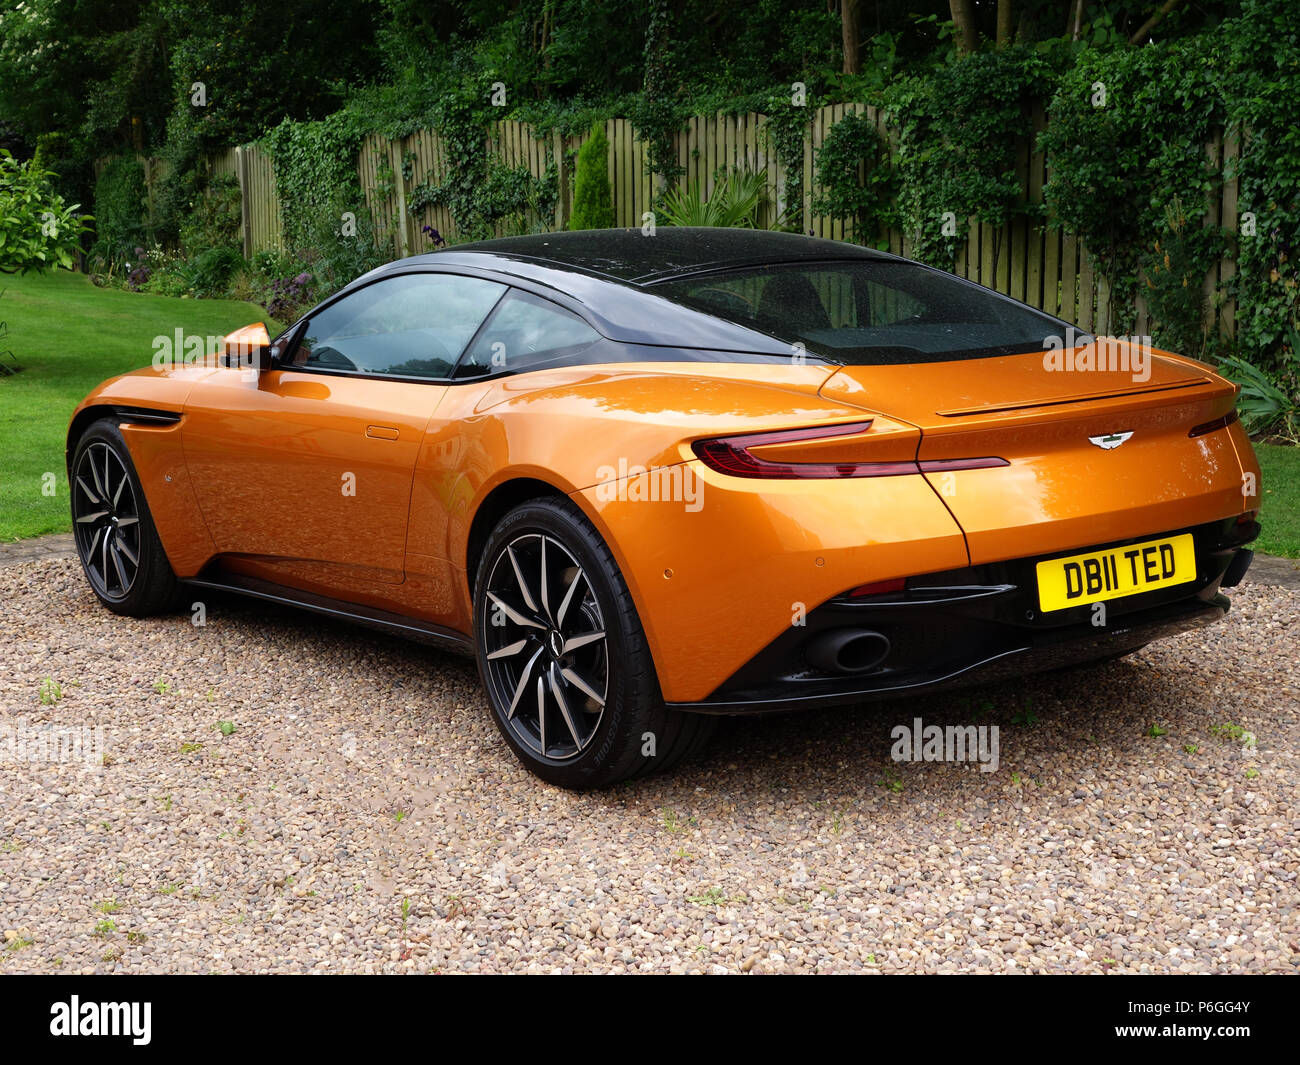 Aston Martin Db11 At A Private Home In South Yorkshire The Aston Martin Db11 Sports Car Is A British Grand Tourer Stock Photo Alamy